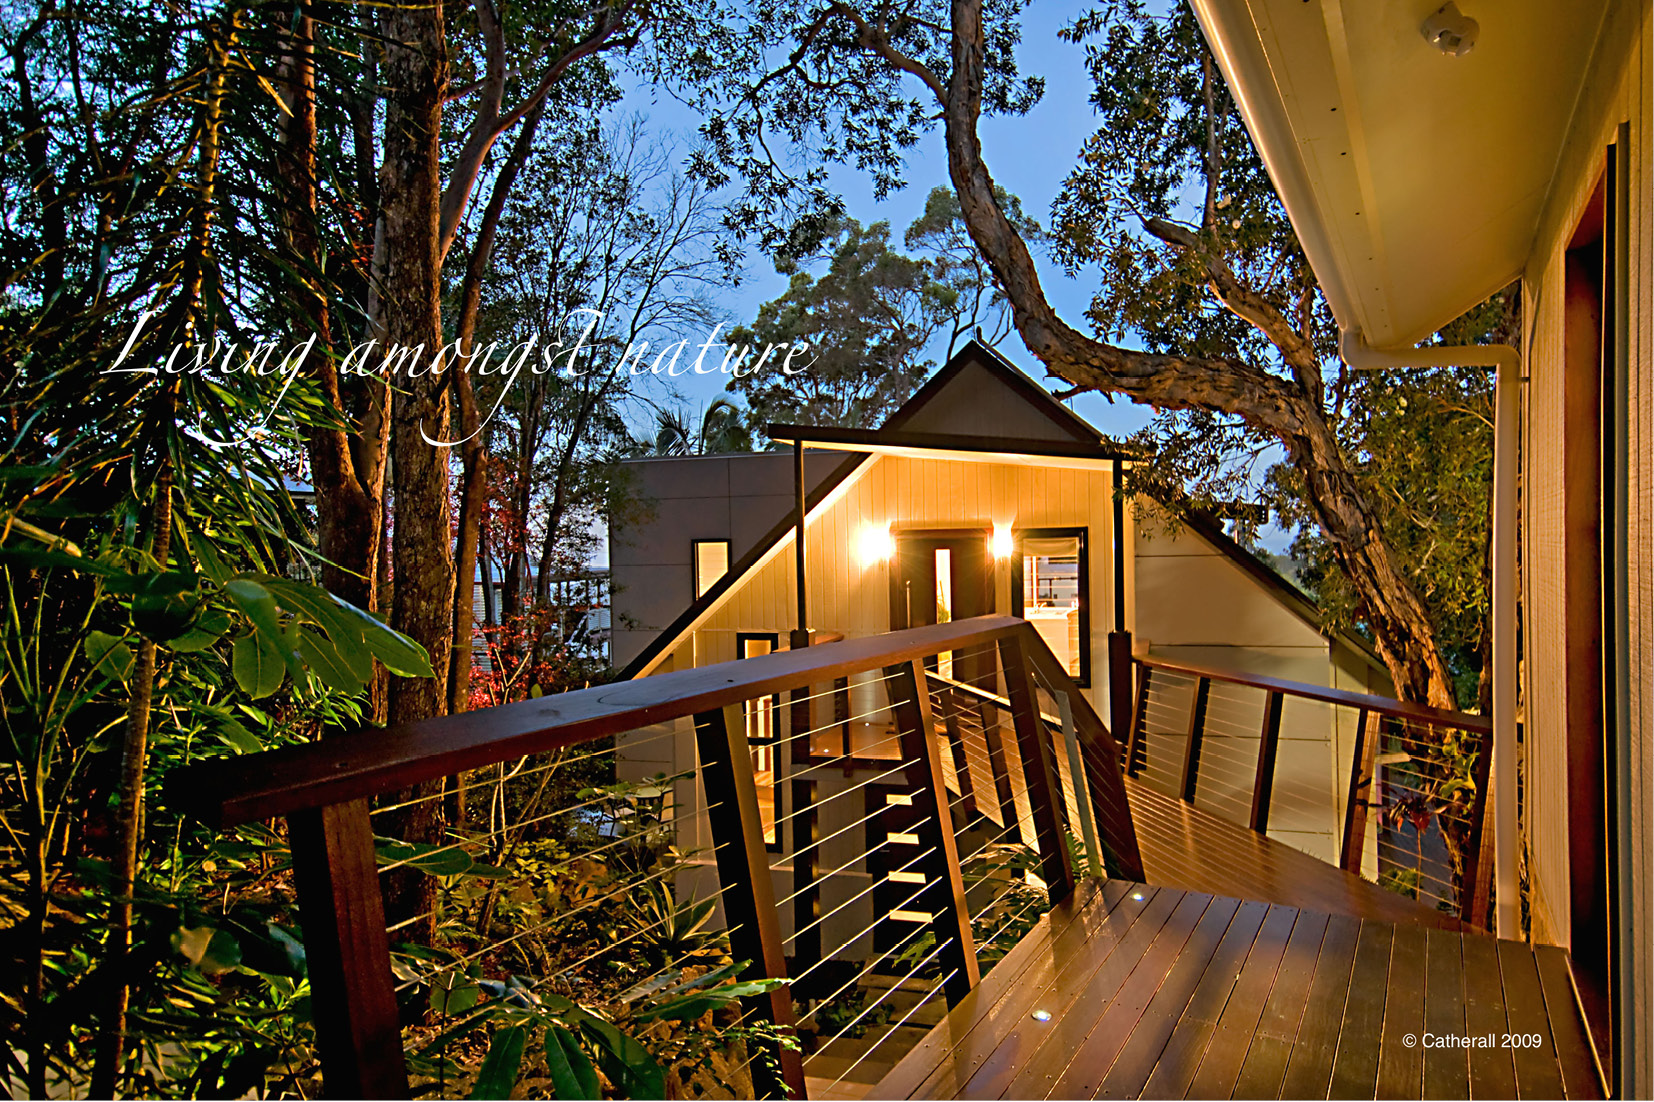 Sunshine Coast Home Builder - living amongst nature